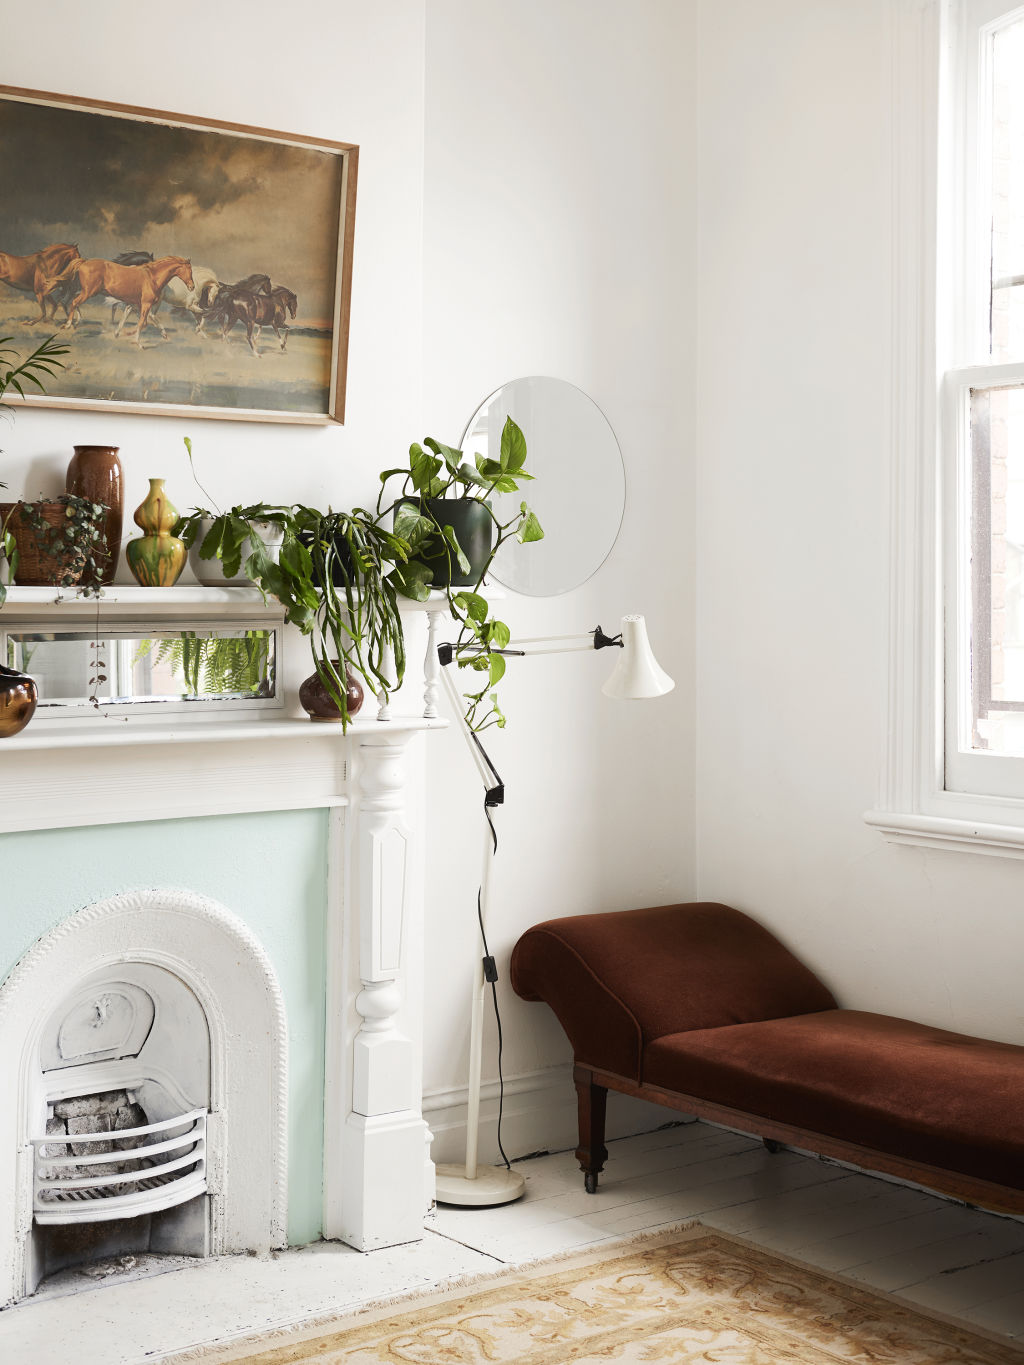 The light in the house streams into the second floor. It's the only fully white room in the house, so in true Jenna style, she had to paint the fireplace just to 'add a little something-something'. Daybed, lamp and painting are secondhand. Styling: Annie Portelli.